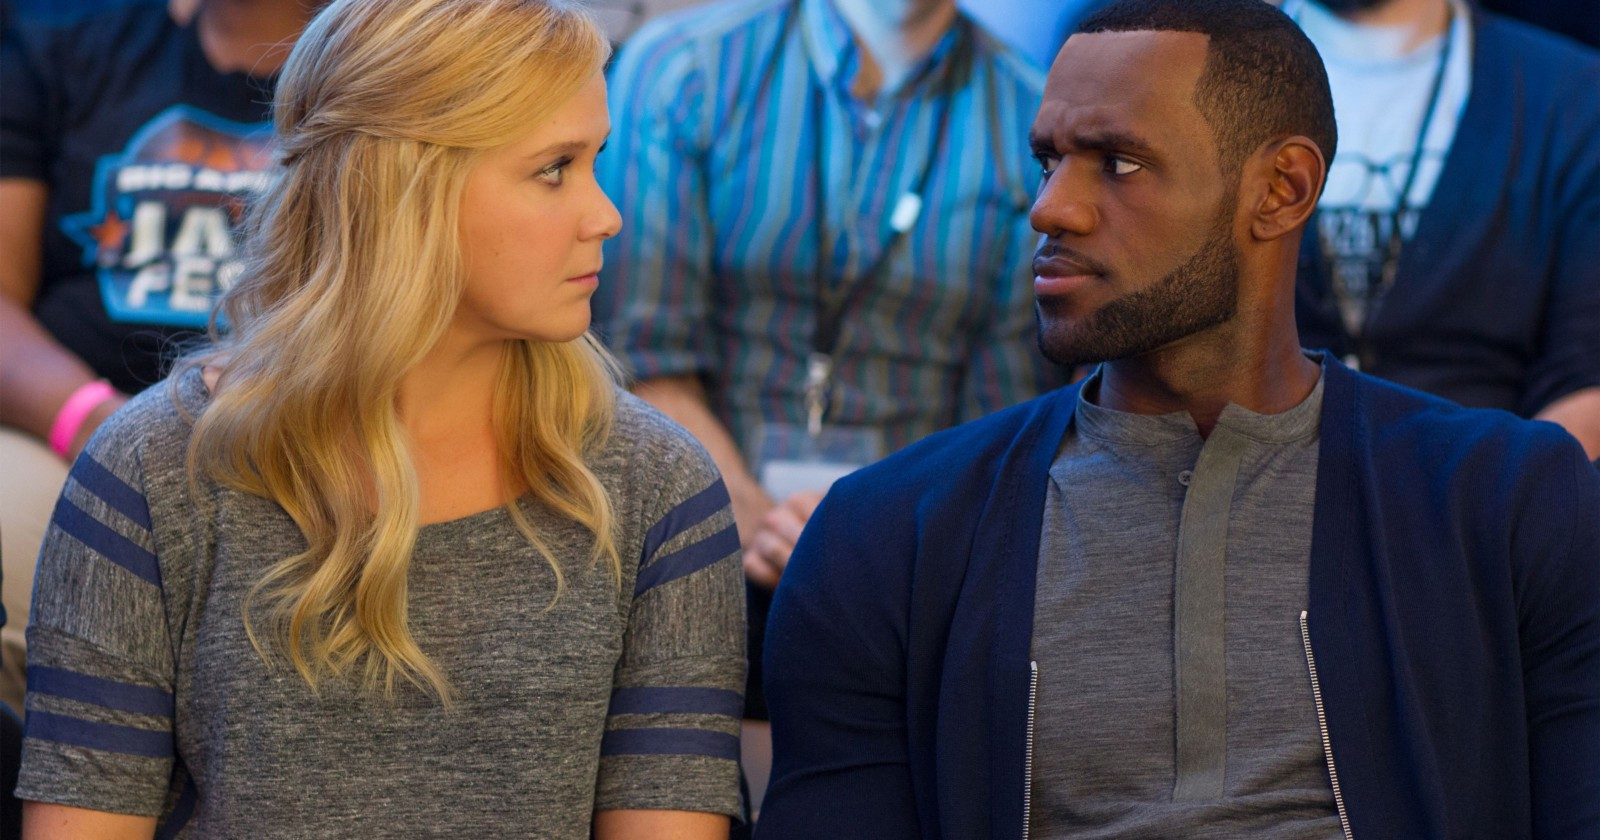 70150154a9e3 Better Late than Never Film Review  Trainwreck – Malcolm Thomas – Medium